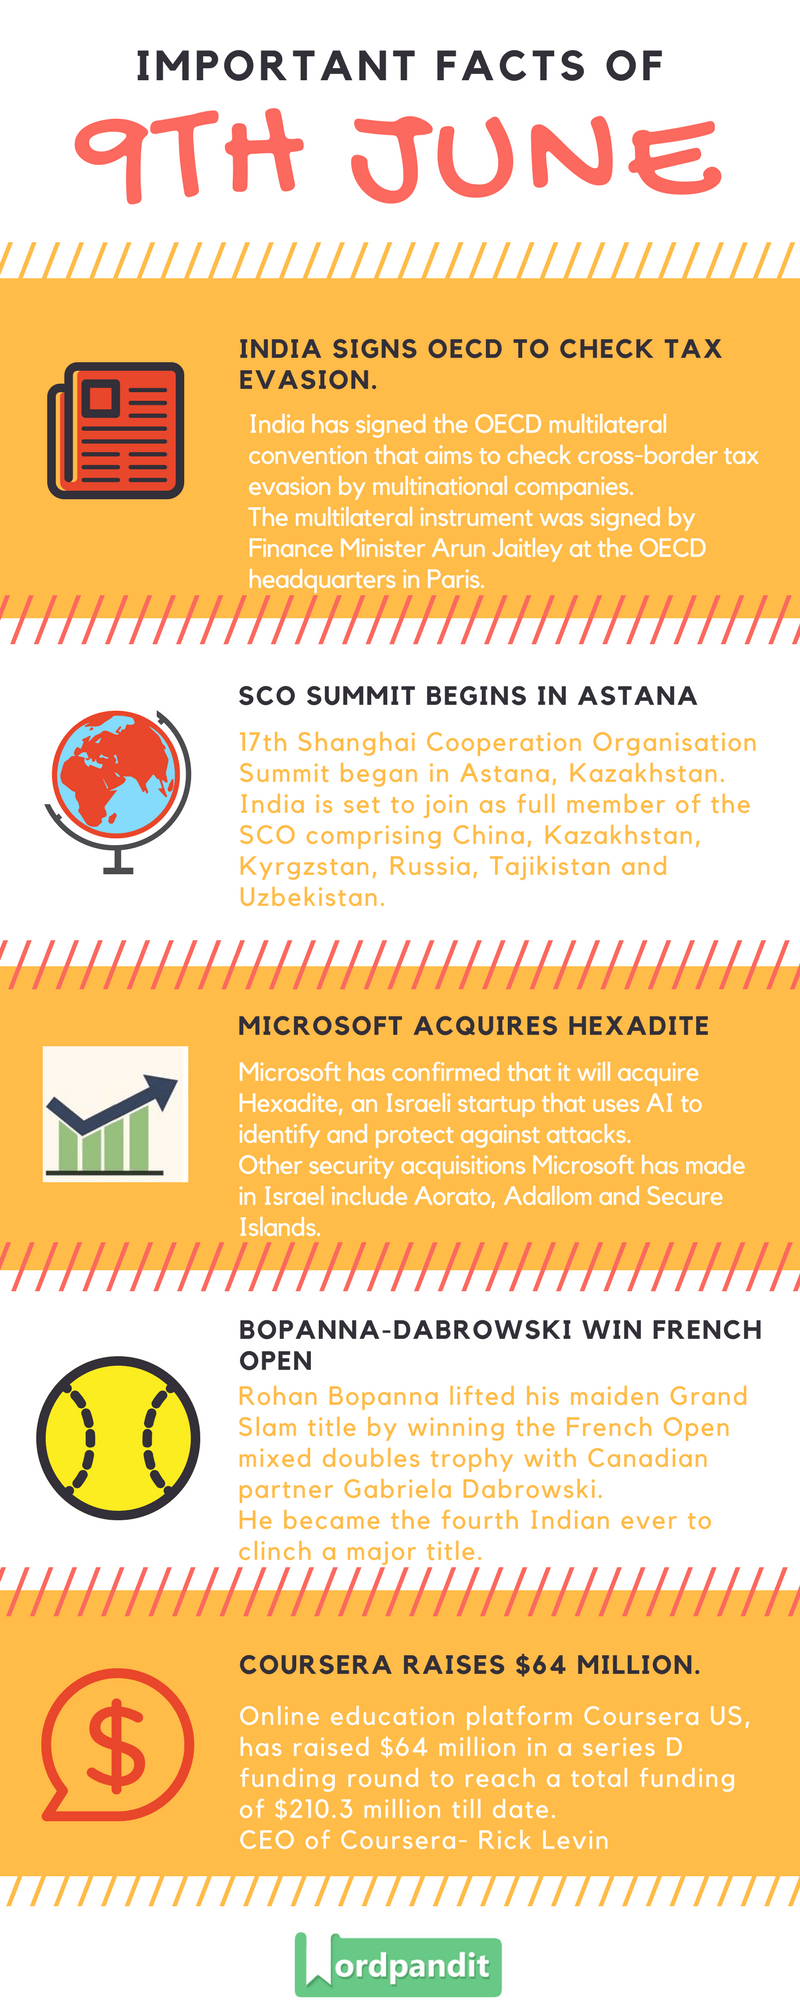 Daily Current Affairs 9 june 2017 and Current Affairs Quiz June 9 2017 |Current Affairs Infographic 9 june 2017